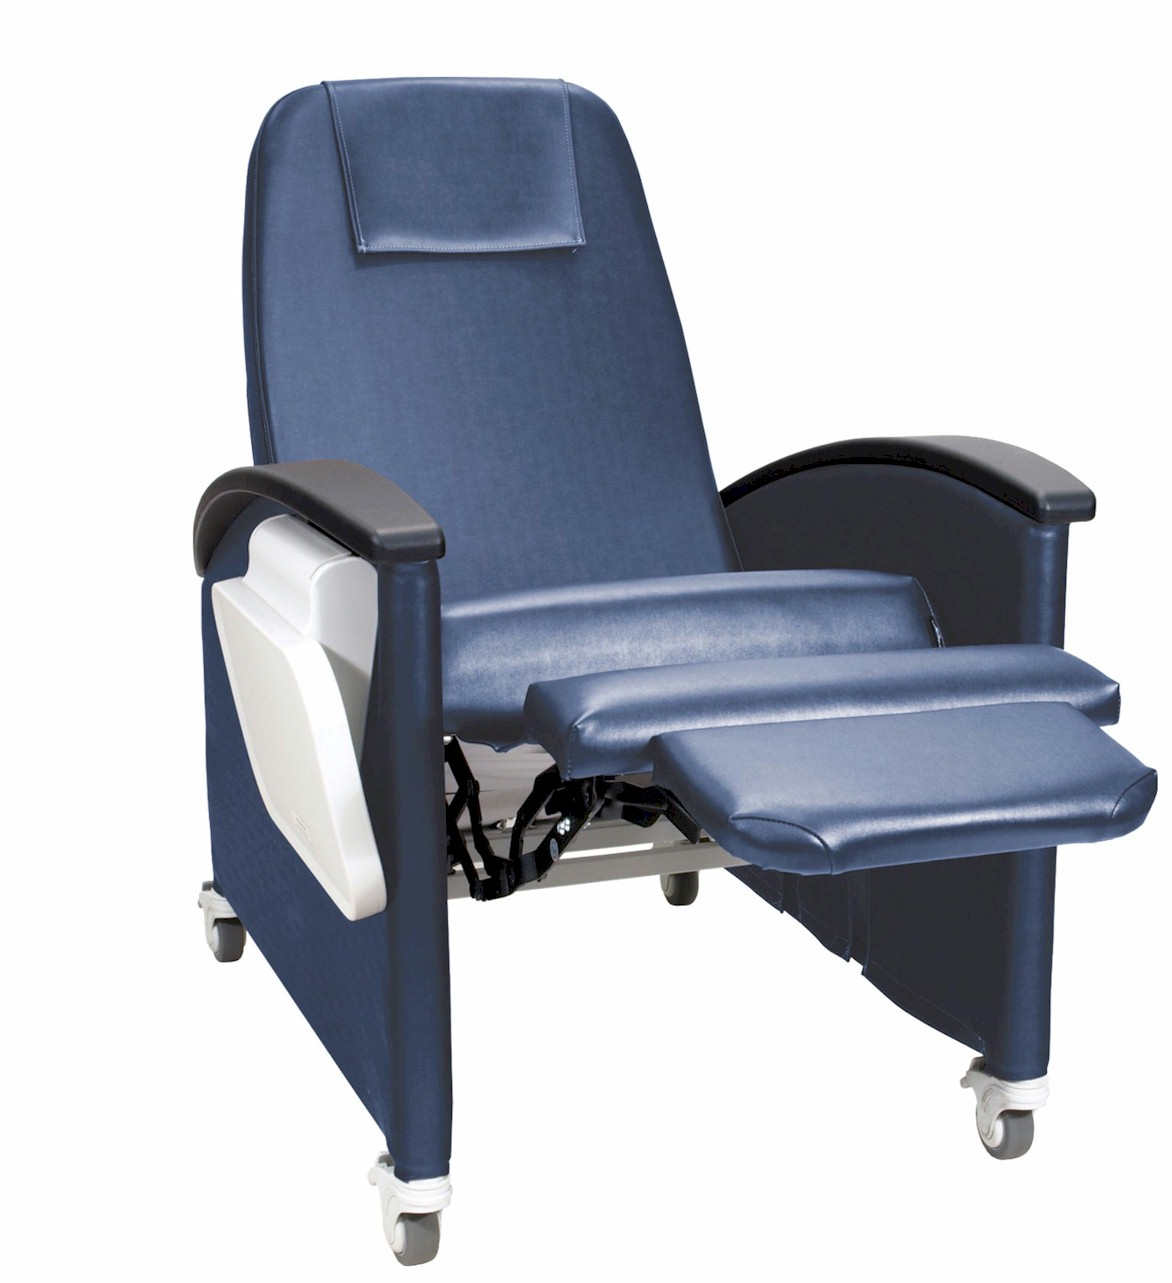 Medical Recliner-Contact Us At 1-800-348-9006 For Pricing ...